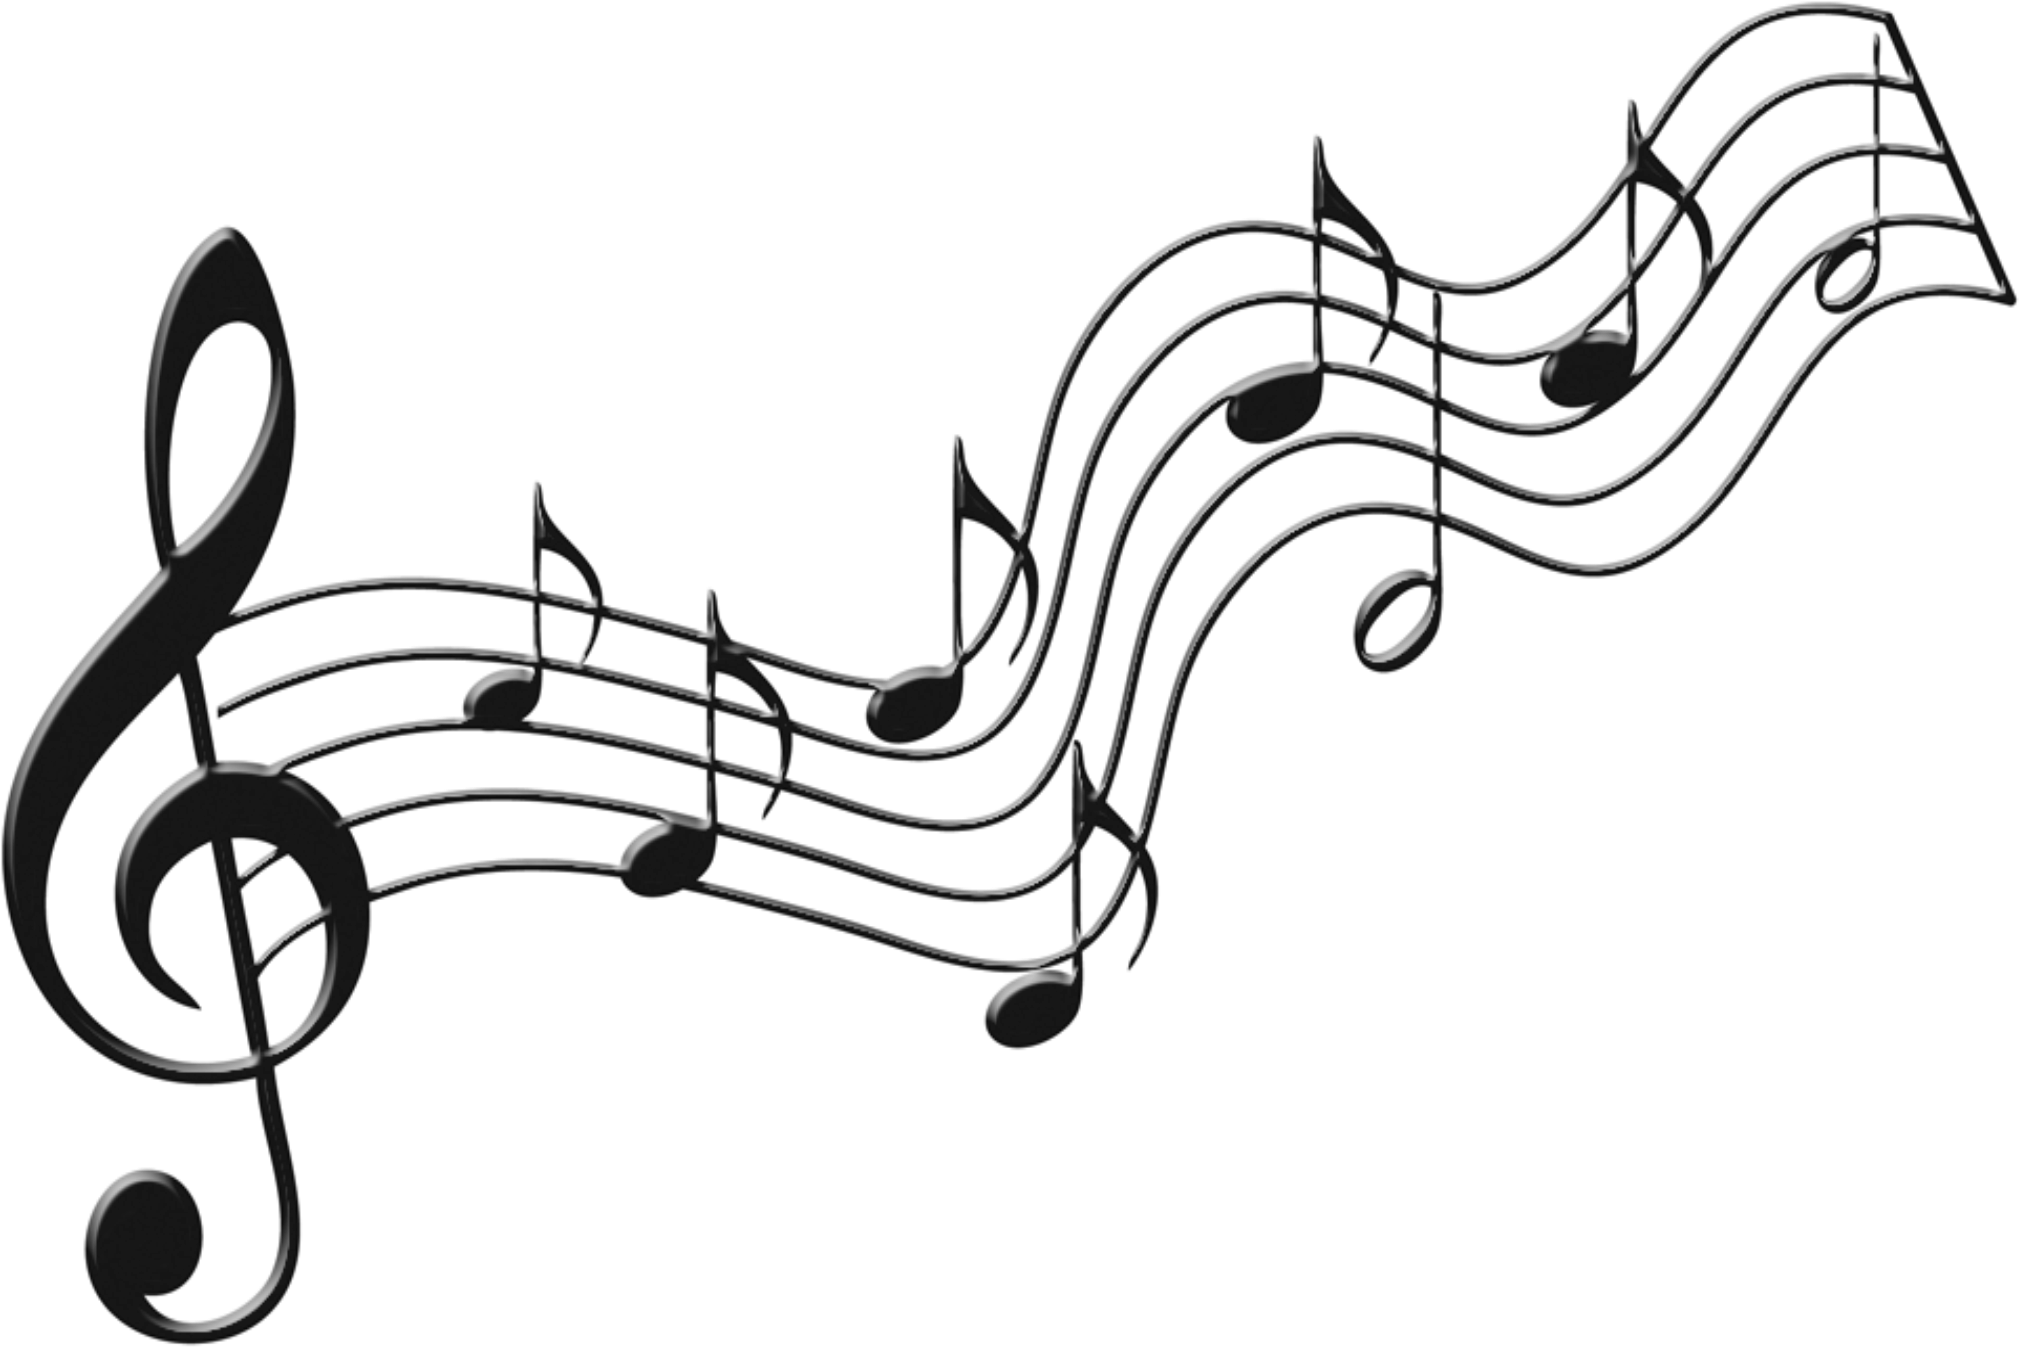 Transparent music notes clipart - Music Notes Transparent Background Png - Transparent Background Music Notes Clipart